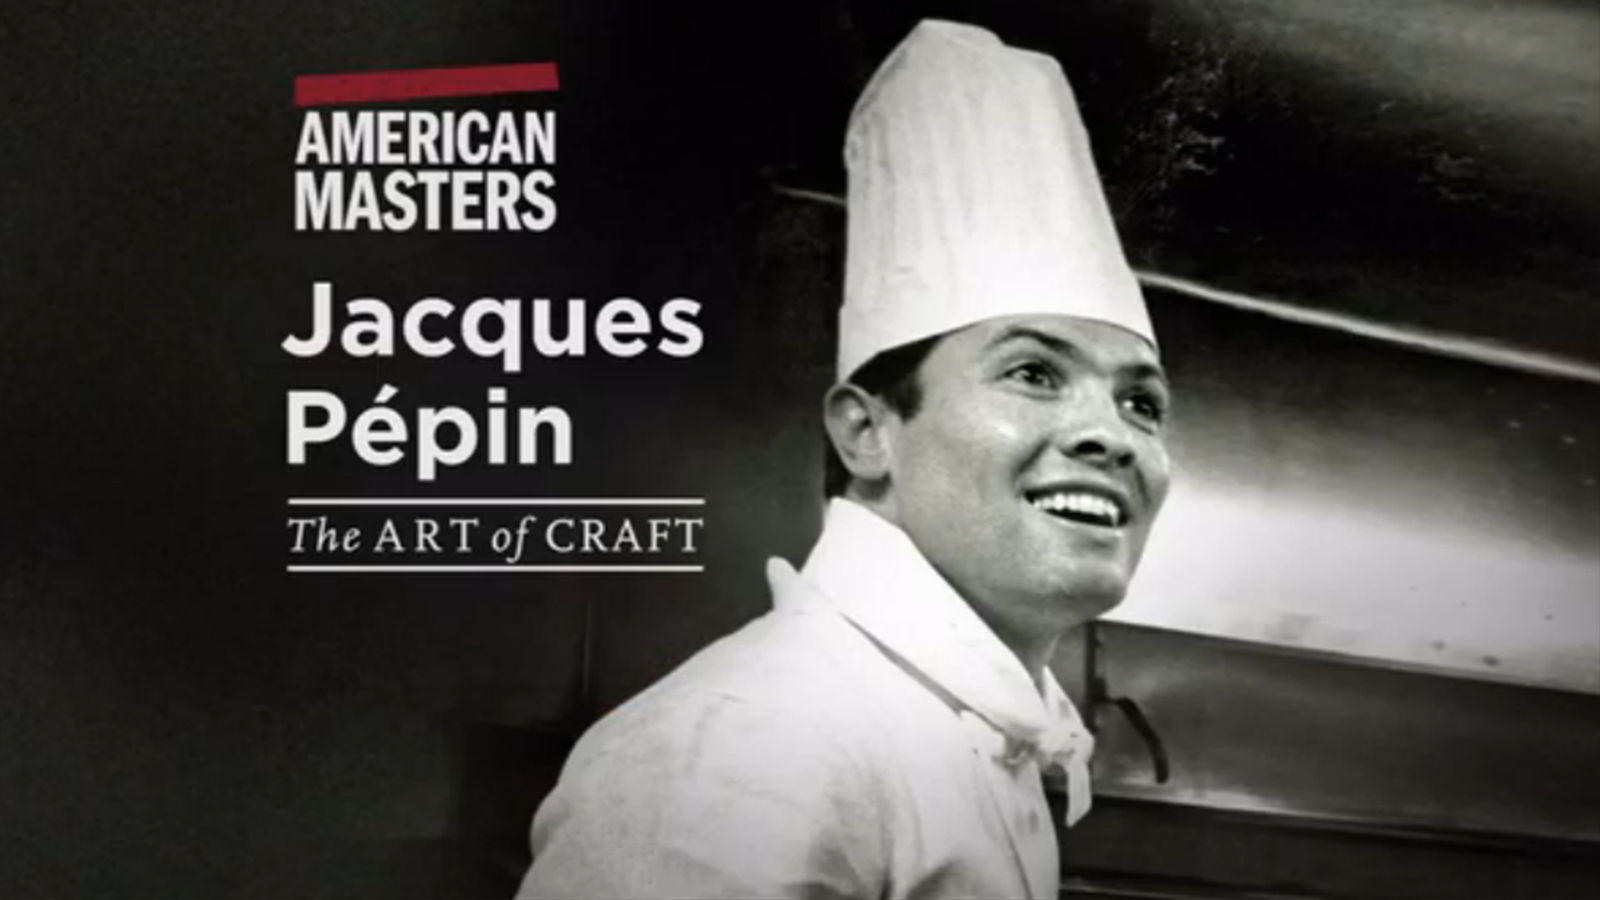 American Masters: Jacques Pepin